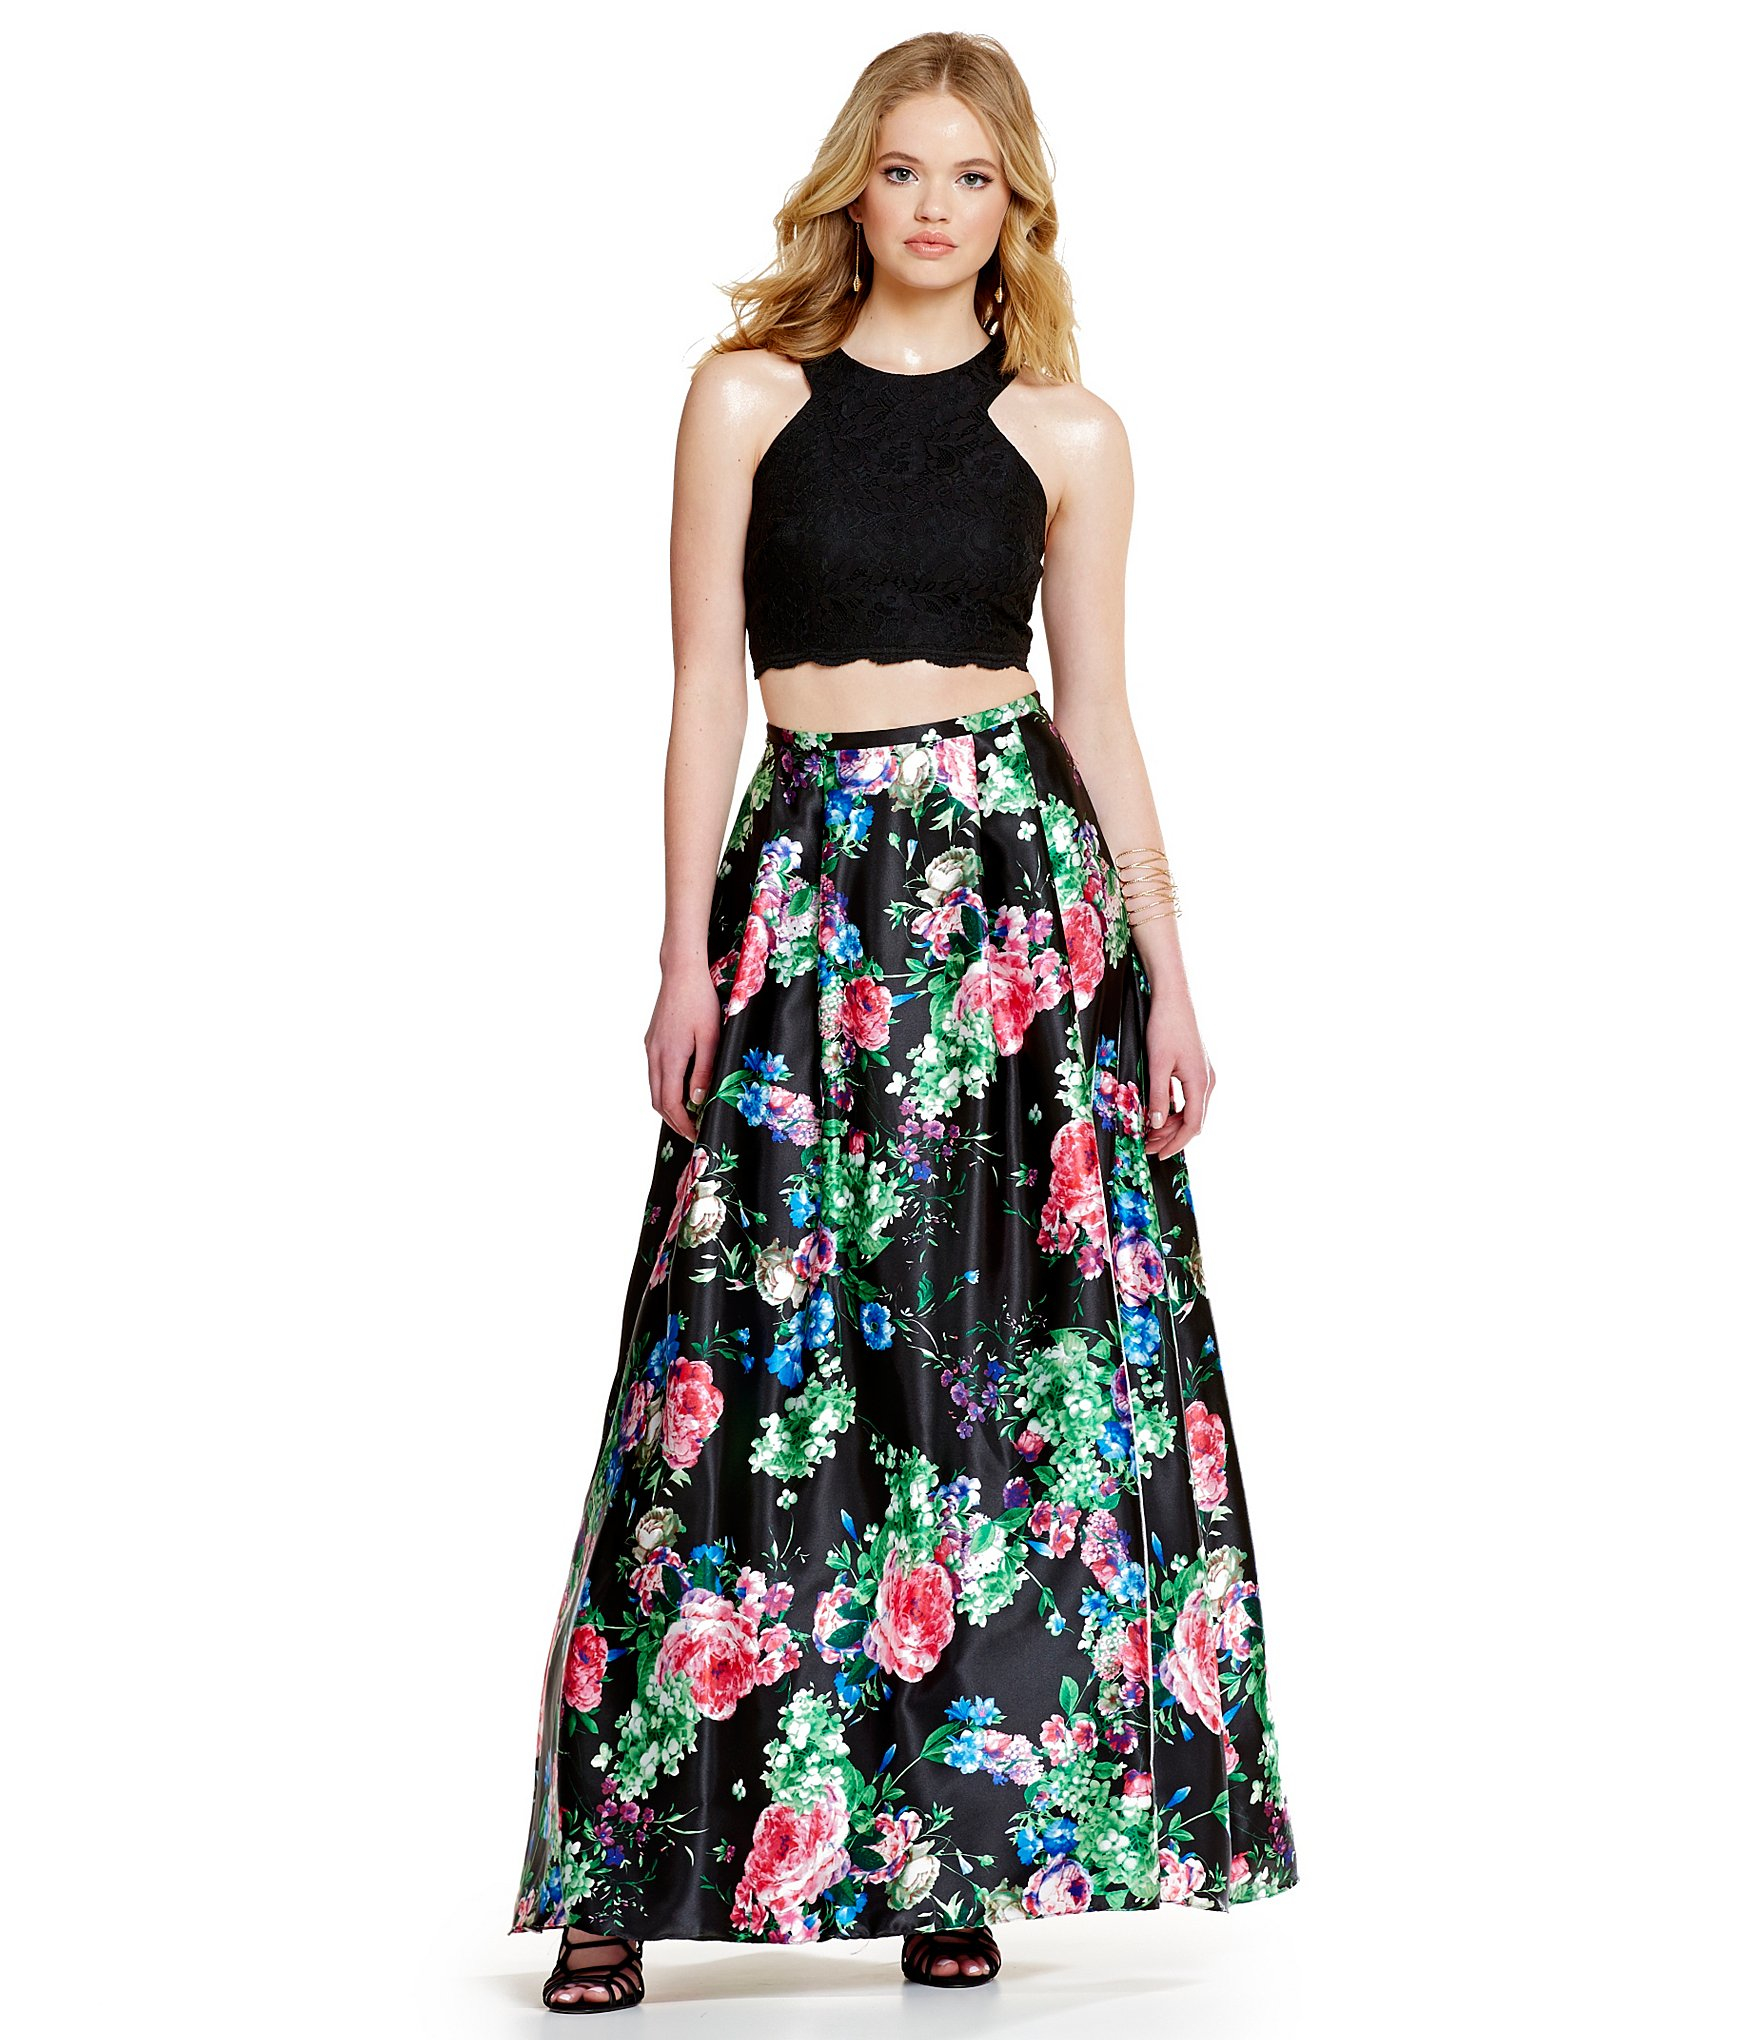 2017 fashion donts - Pin Printed Prom Dresses Betsey Johnson On Pinterest